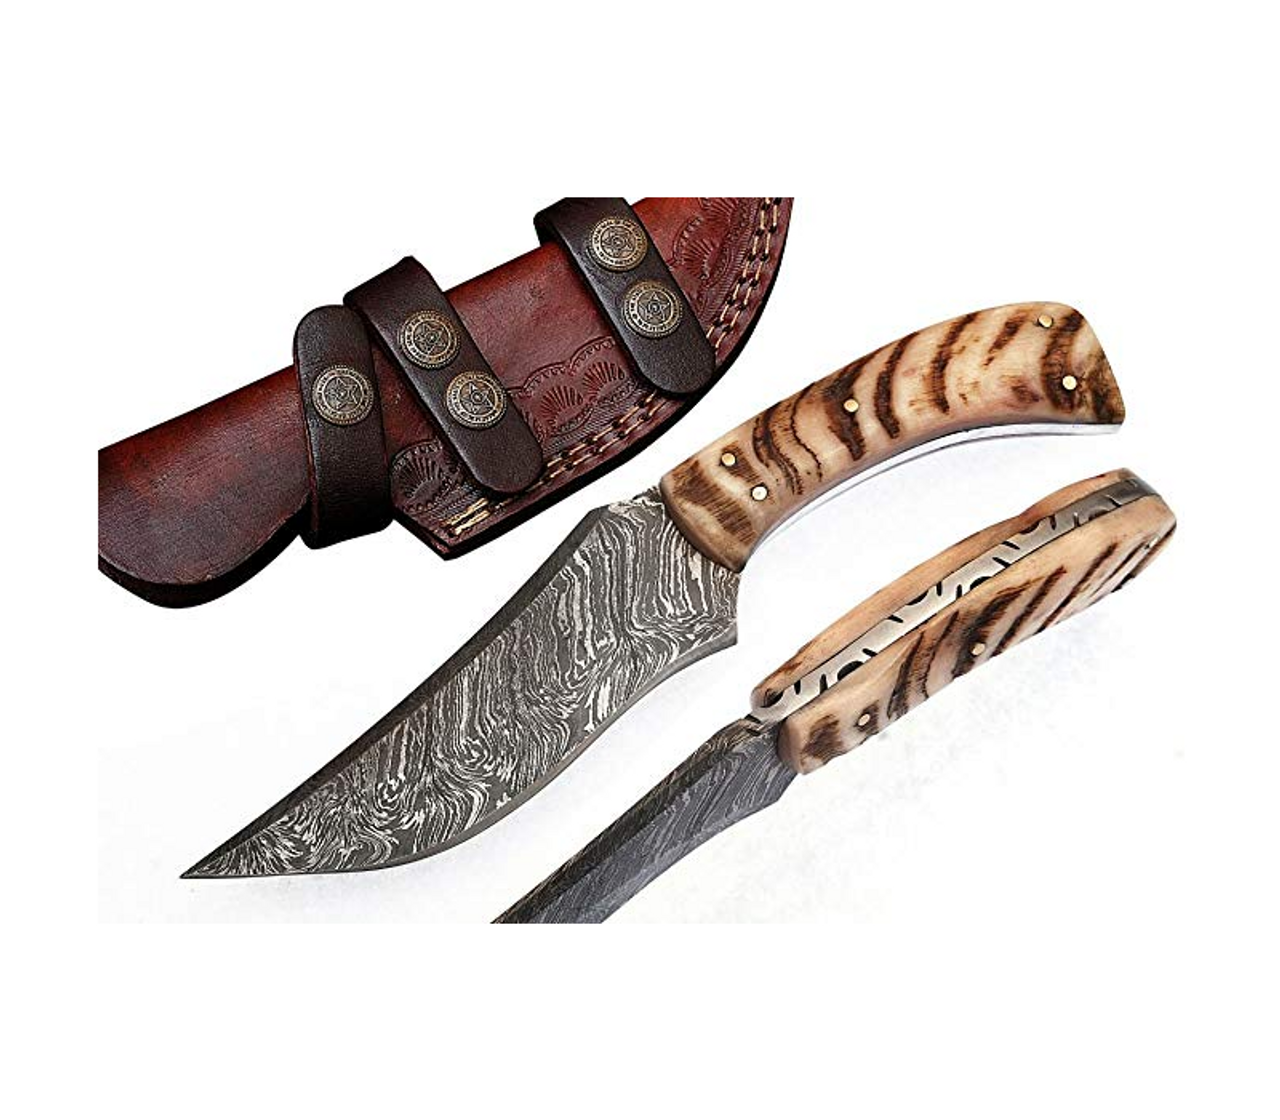 Handmade Damascus Steel Hunting Knife 8 5 Inches With Leather Sheath Imperfect Society